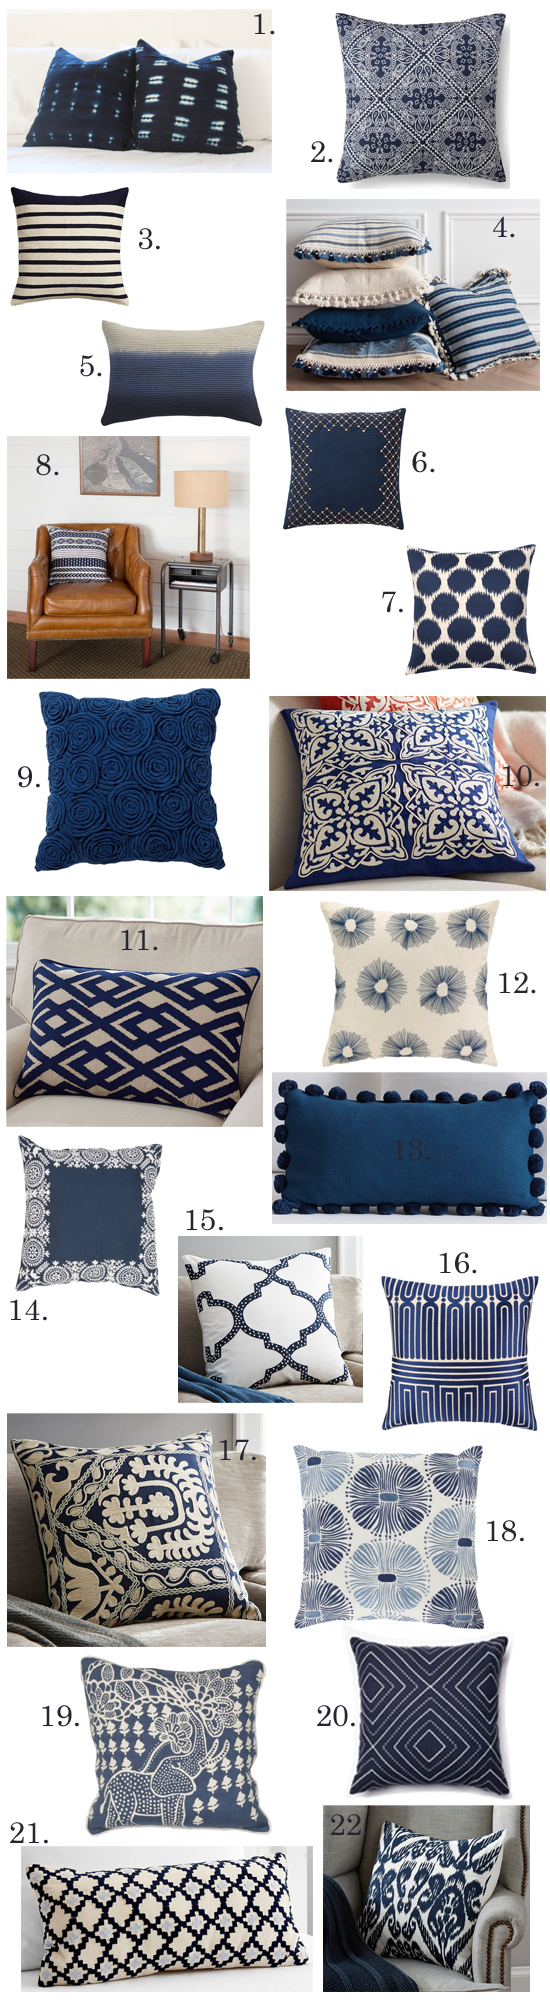 These Are the Best Colors that Go with Navy Blue | Home ...